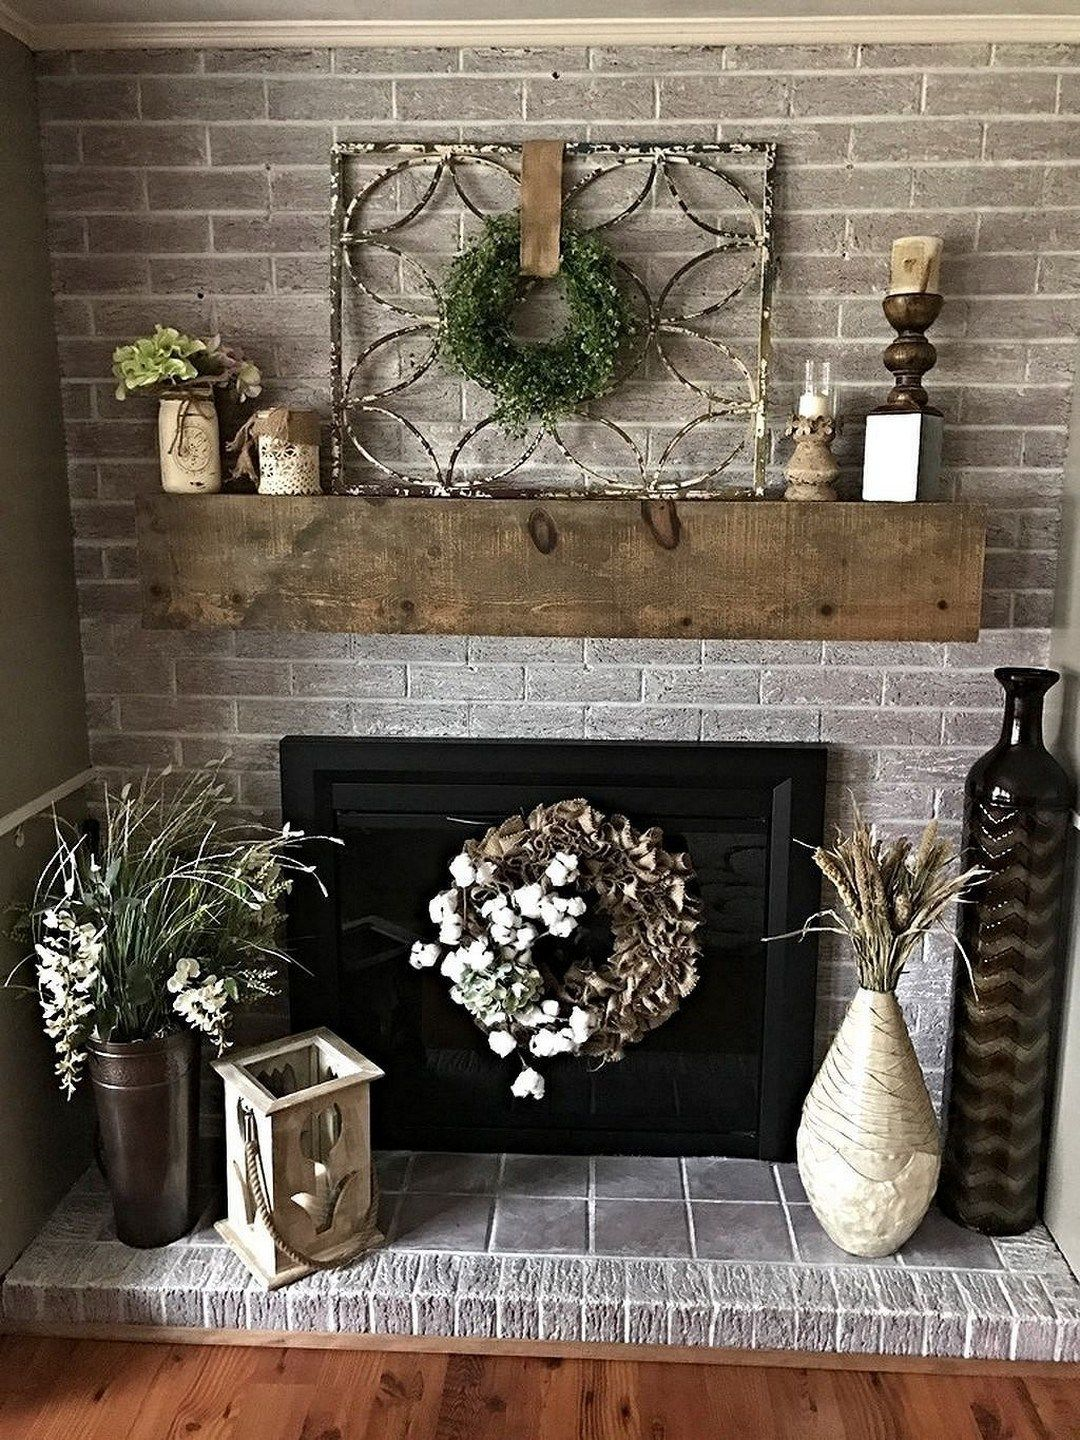 117 incridible rustic farmhouse fireplace ideas makeover